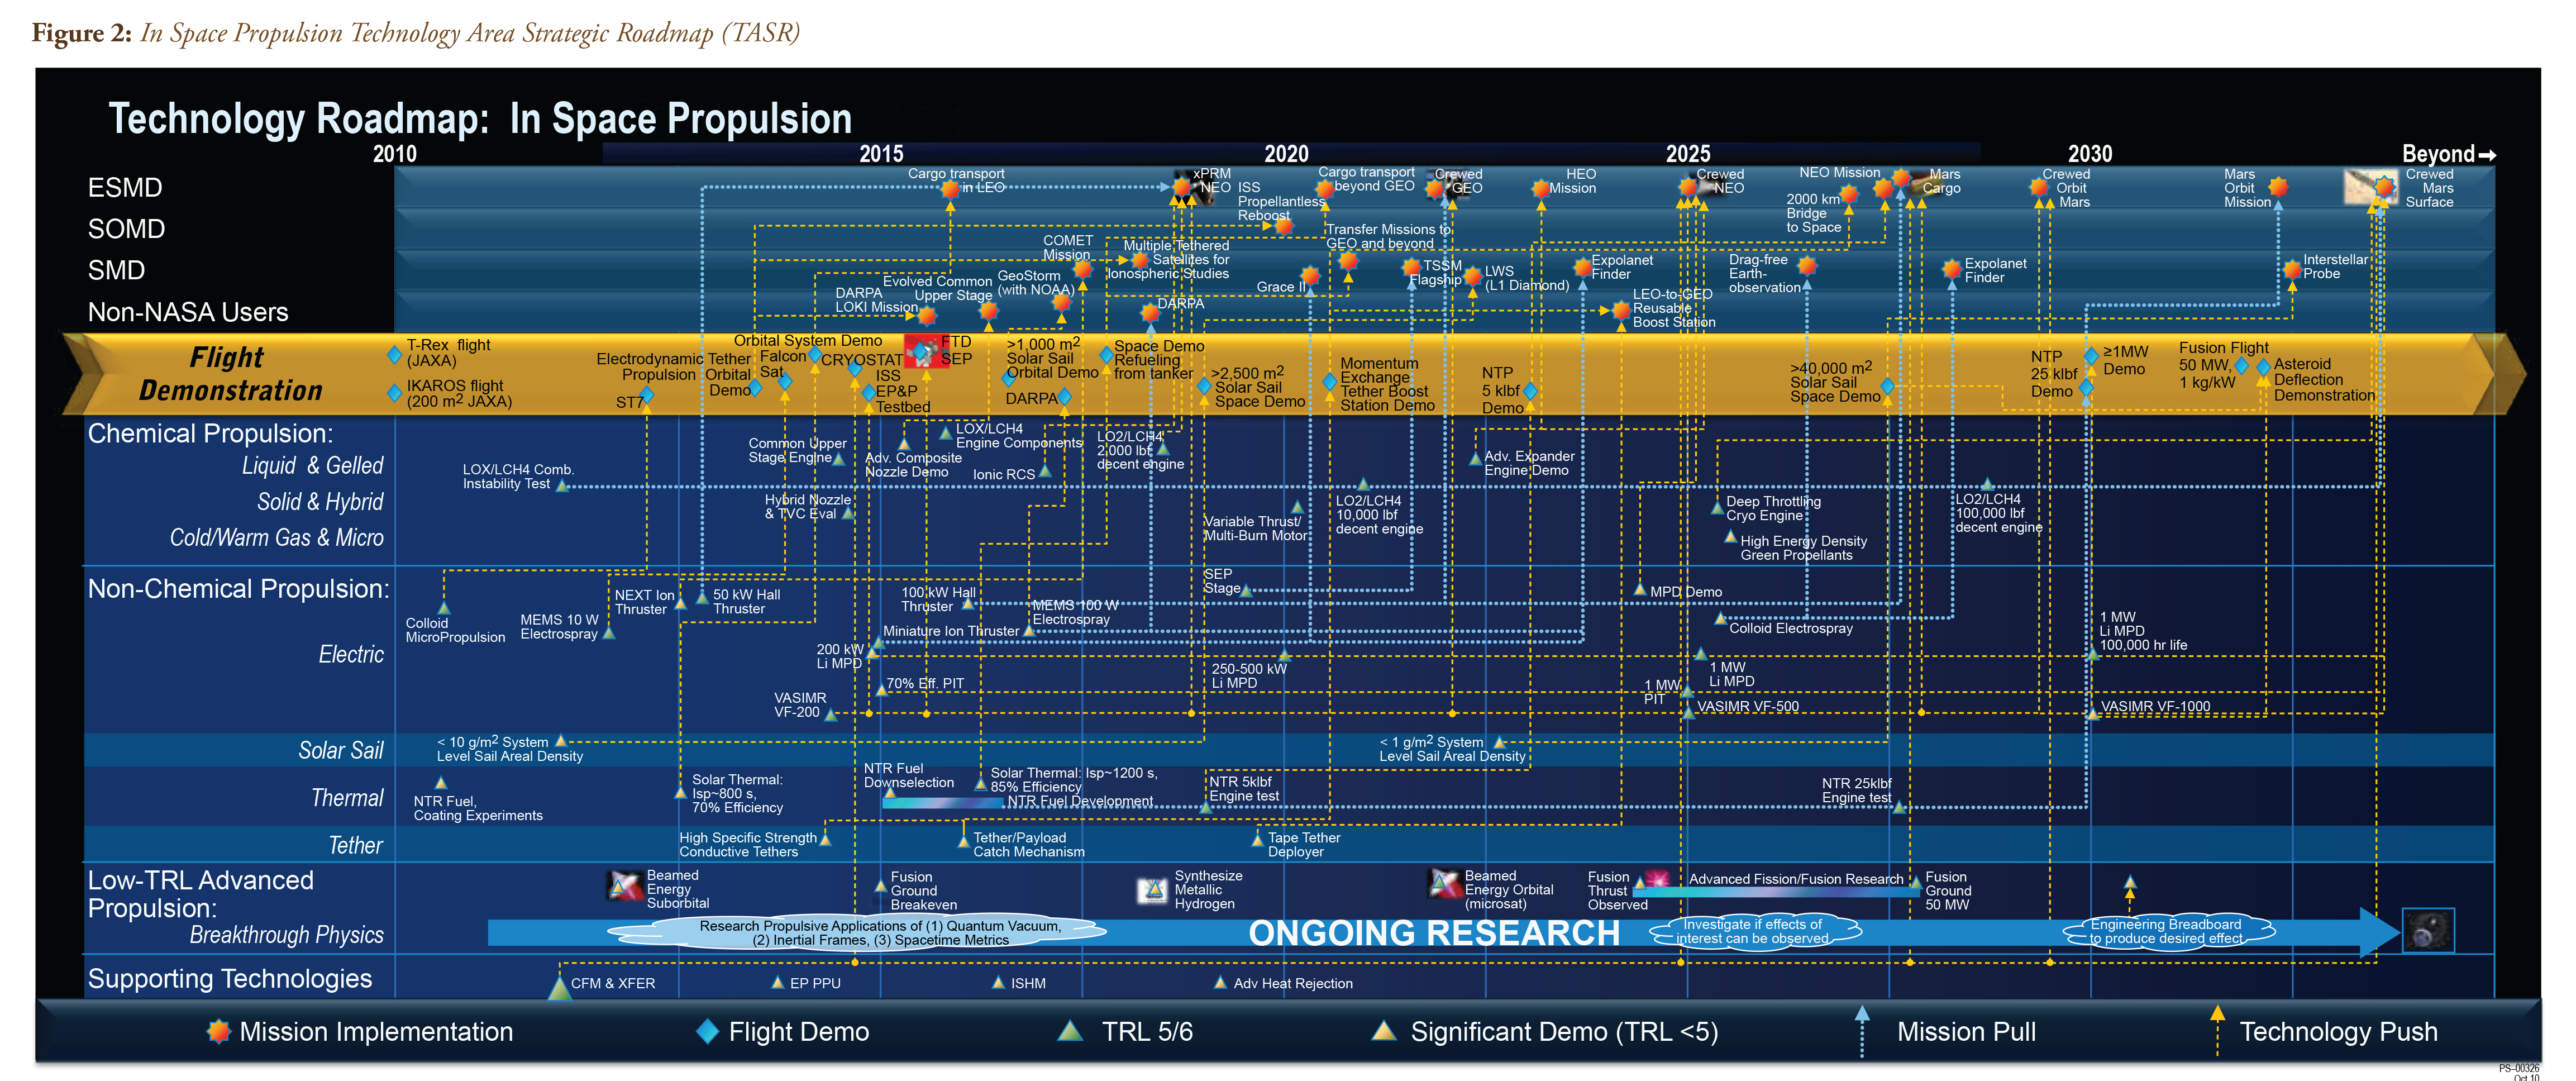 NASA's In-Space Propulsion roadmap, from 2010. You should click to zoom in.